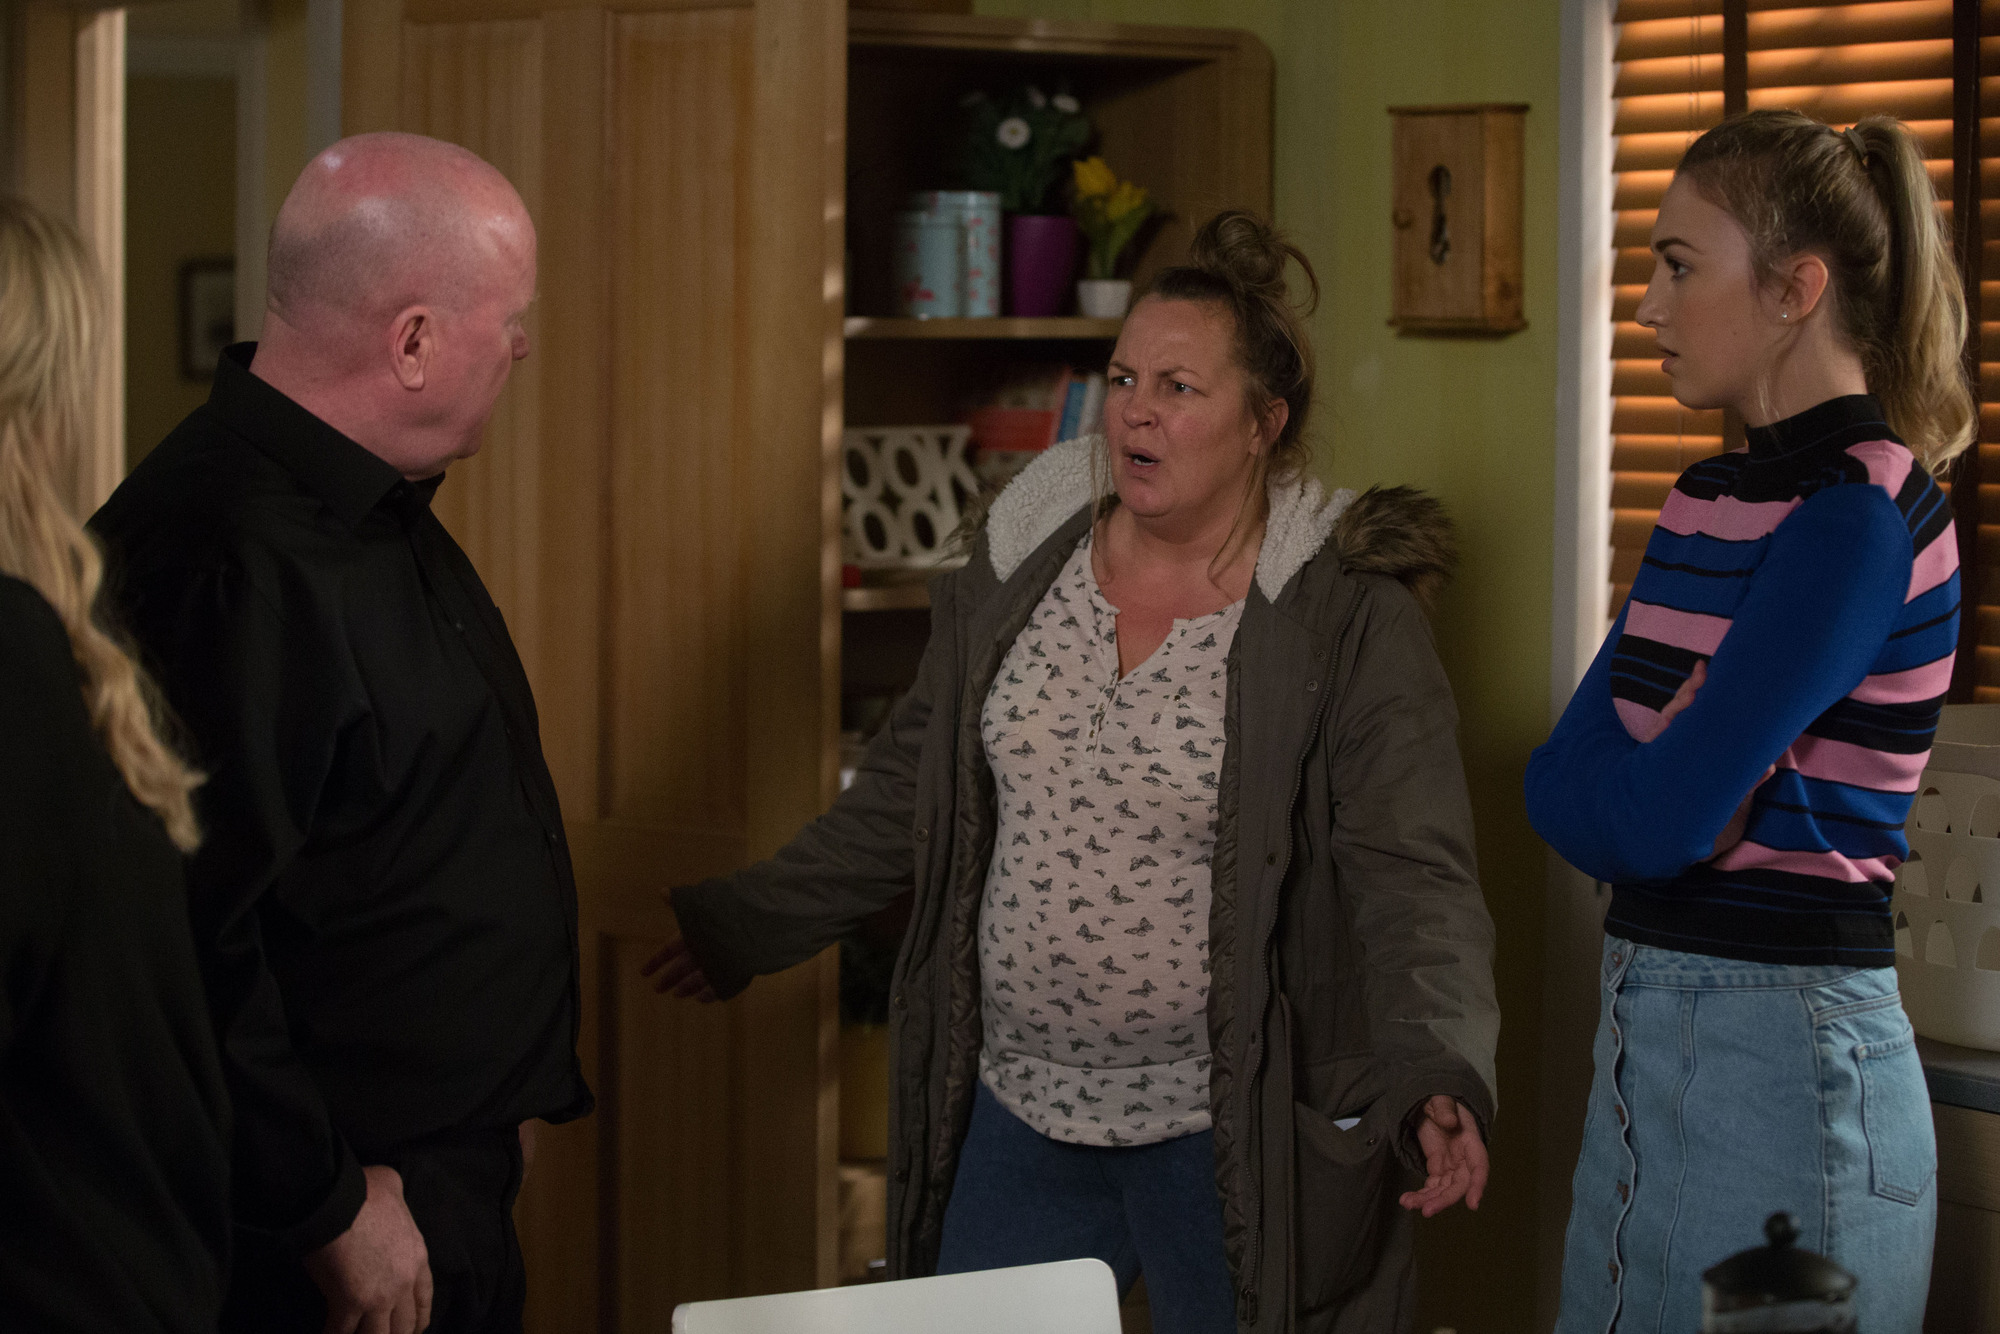 Louise Mitchell and Karen Taylor confront Phil and Sharon in EastEnders